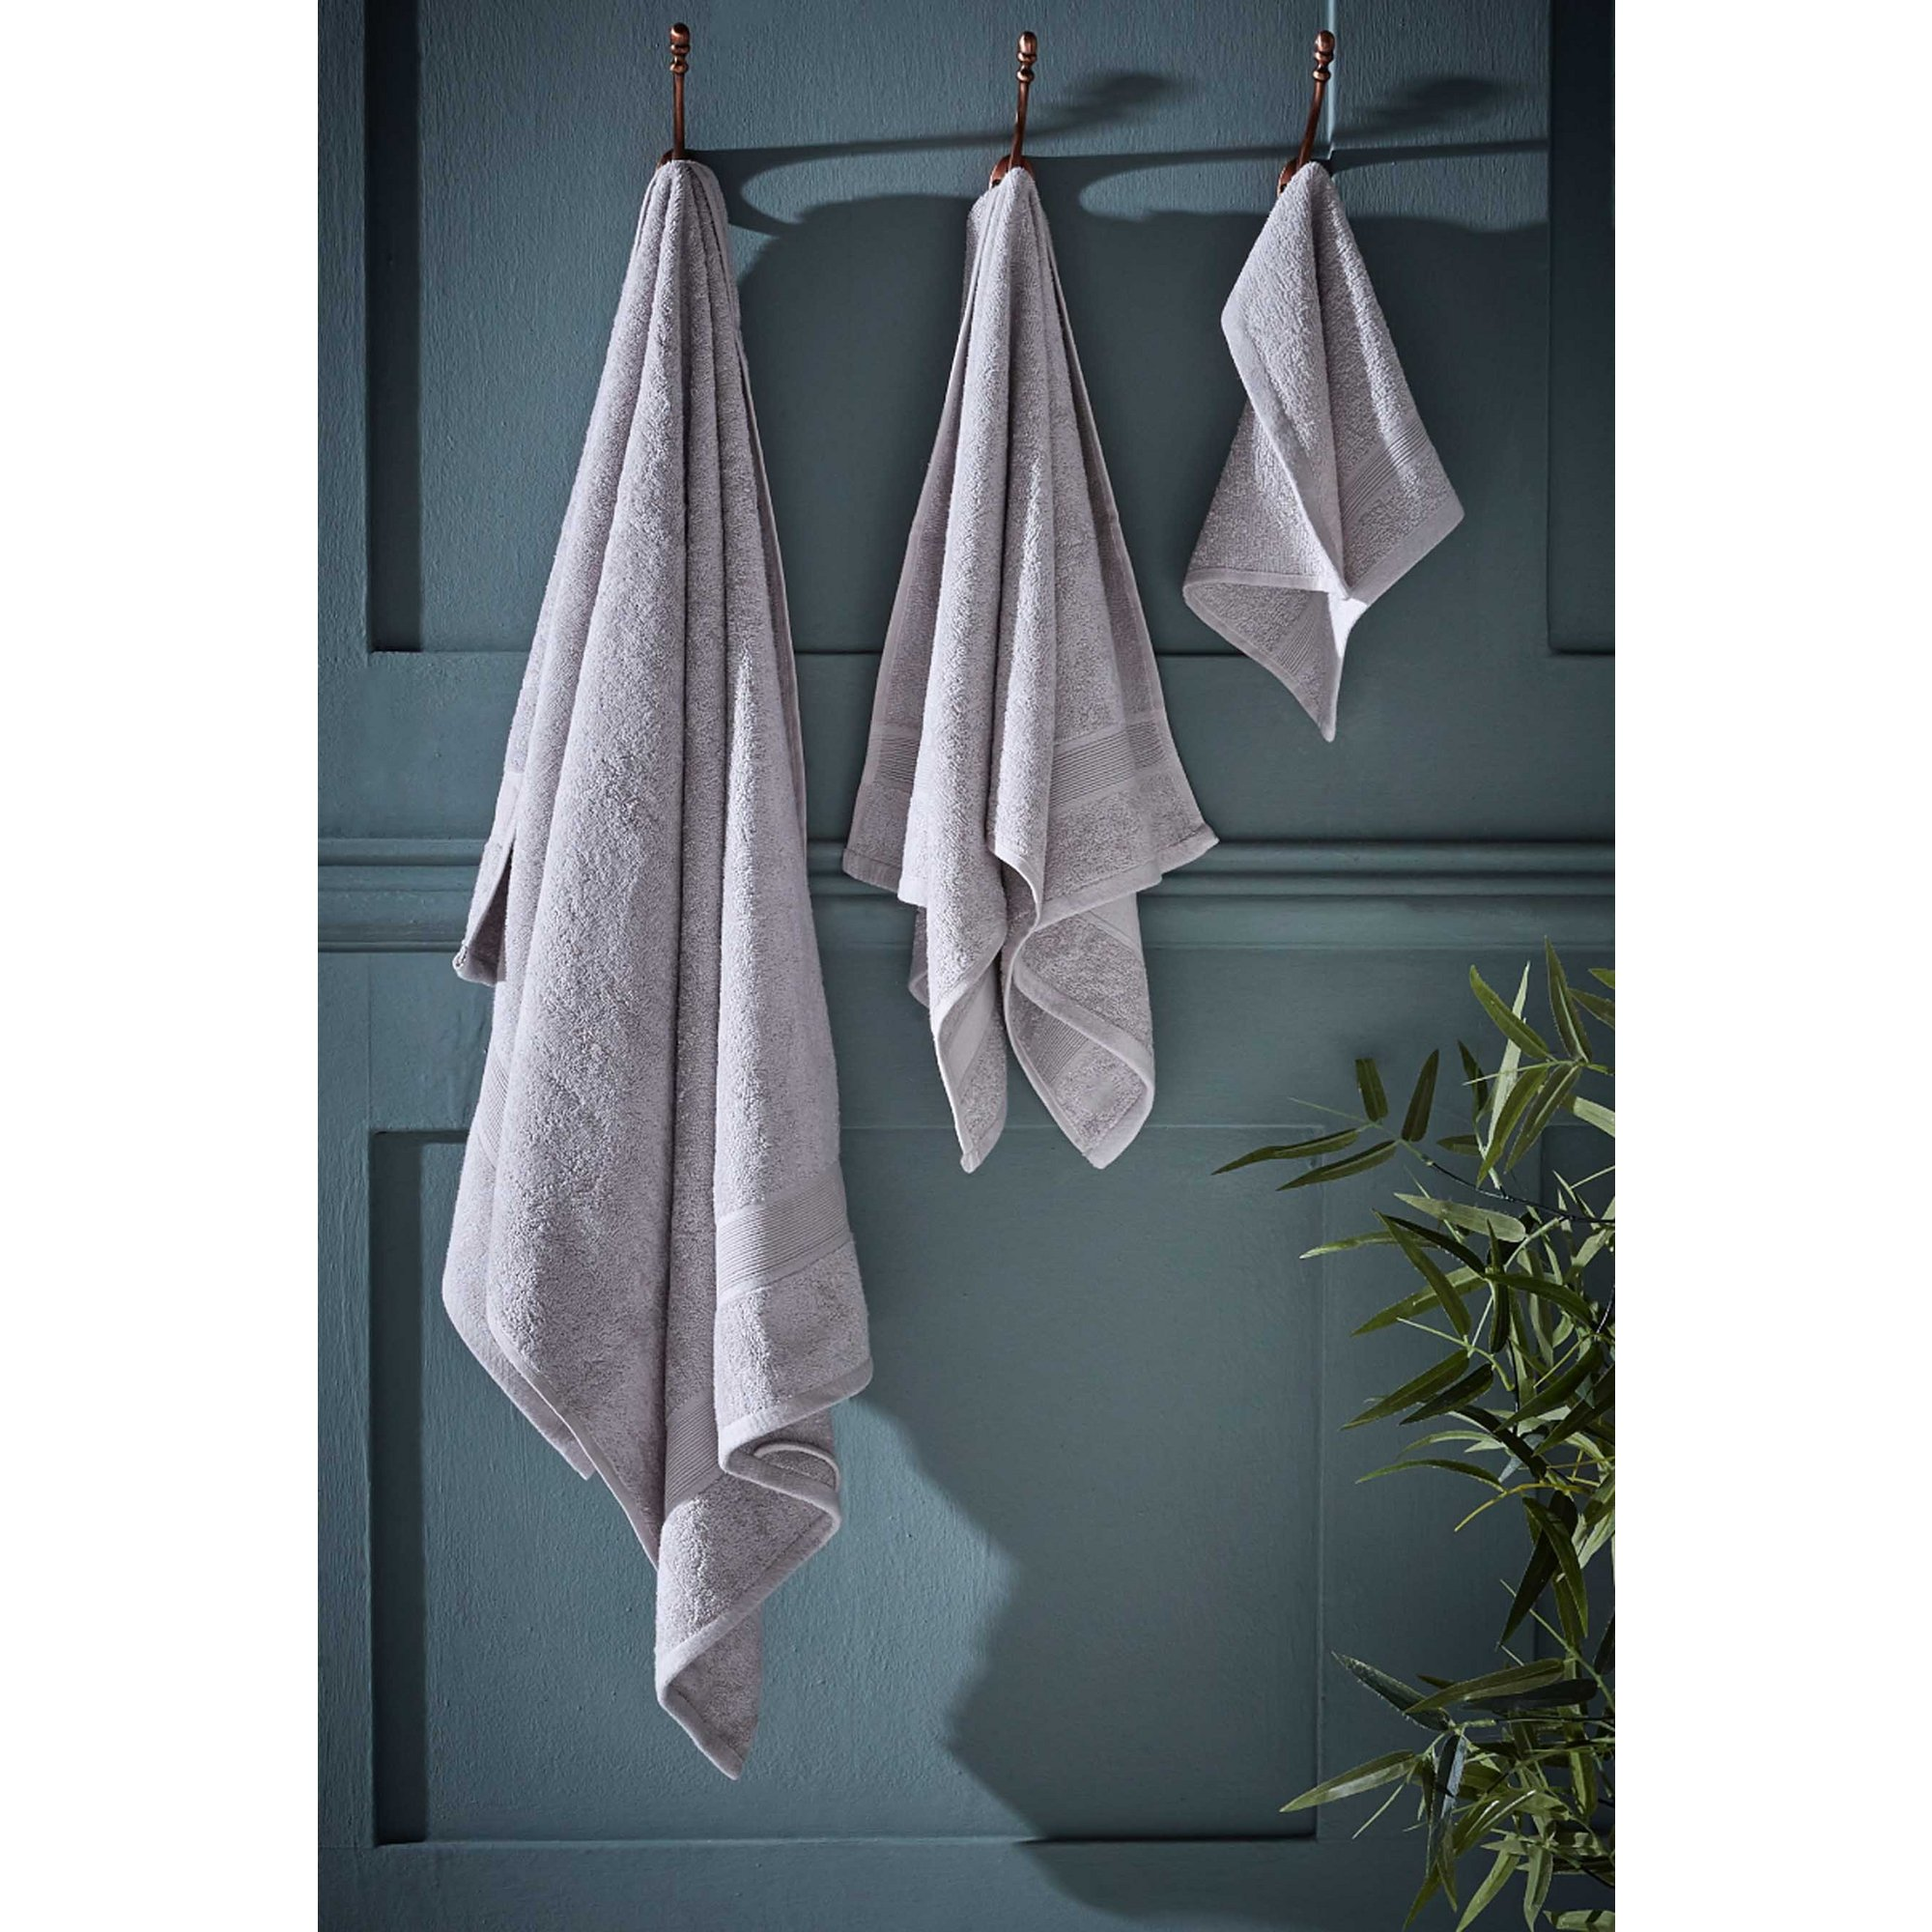 Image of Bamboo 6 Piece Towel Bale